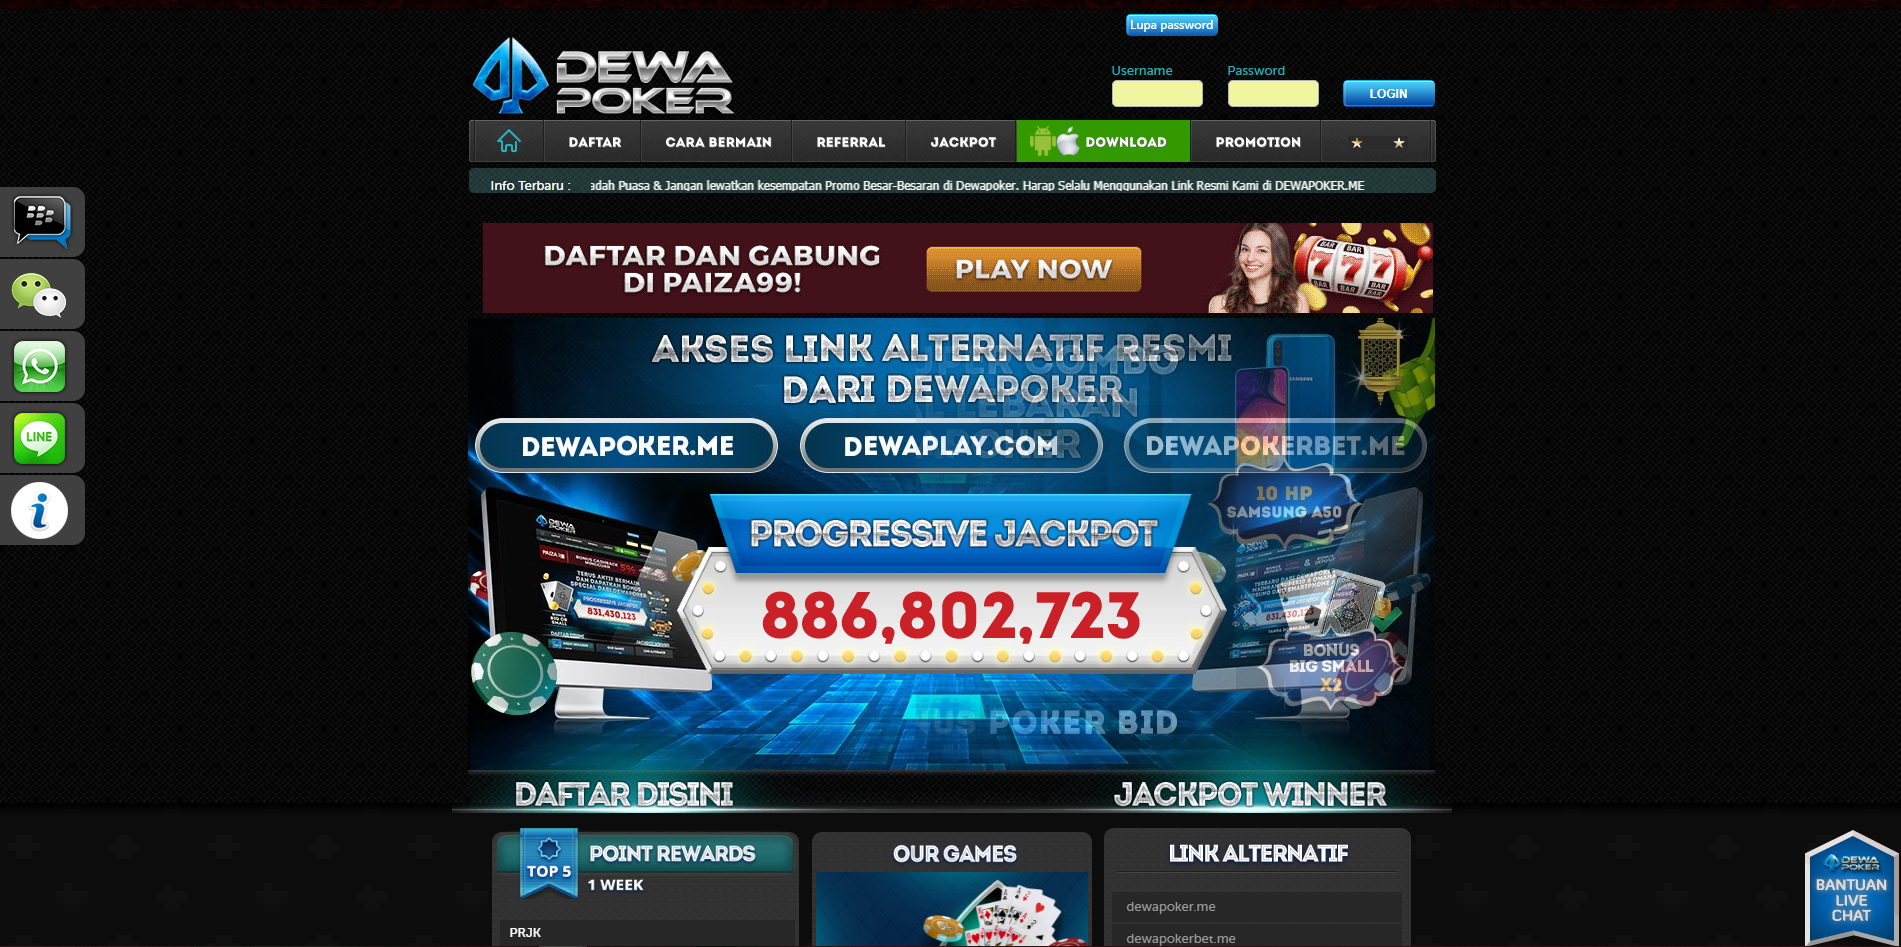 Here S Why We Think You Should Visit Dewapoker Right Away Online Casino Uk